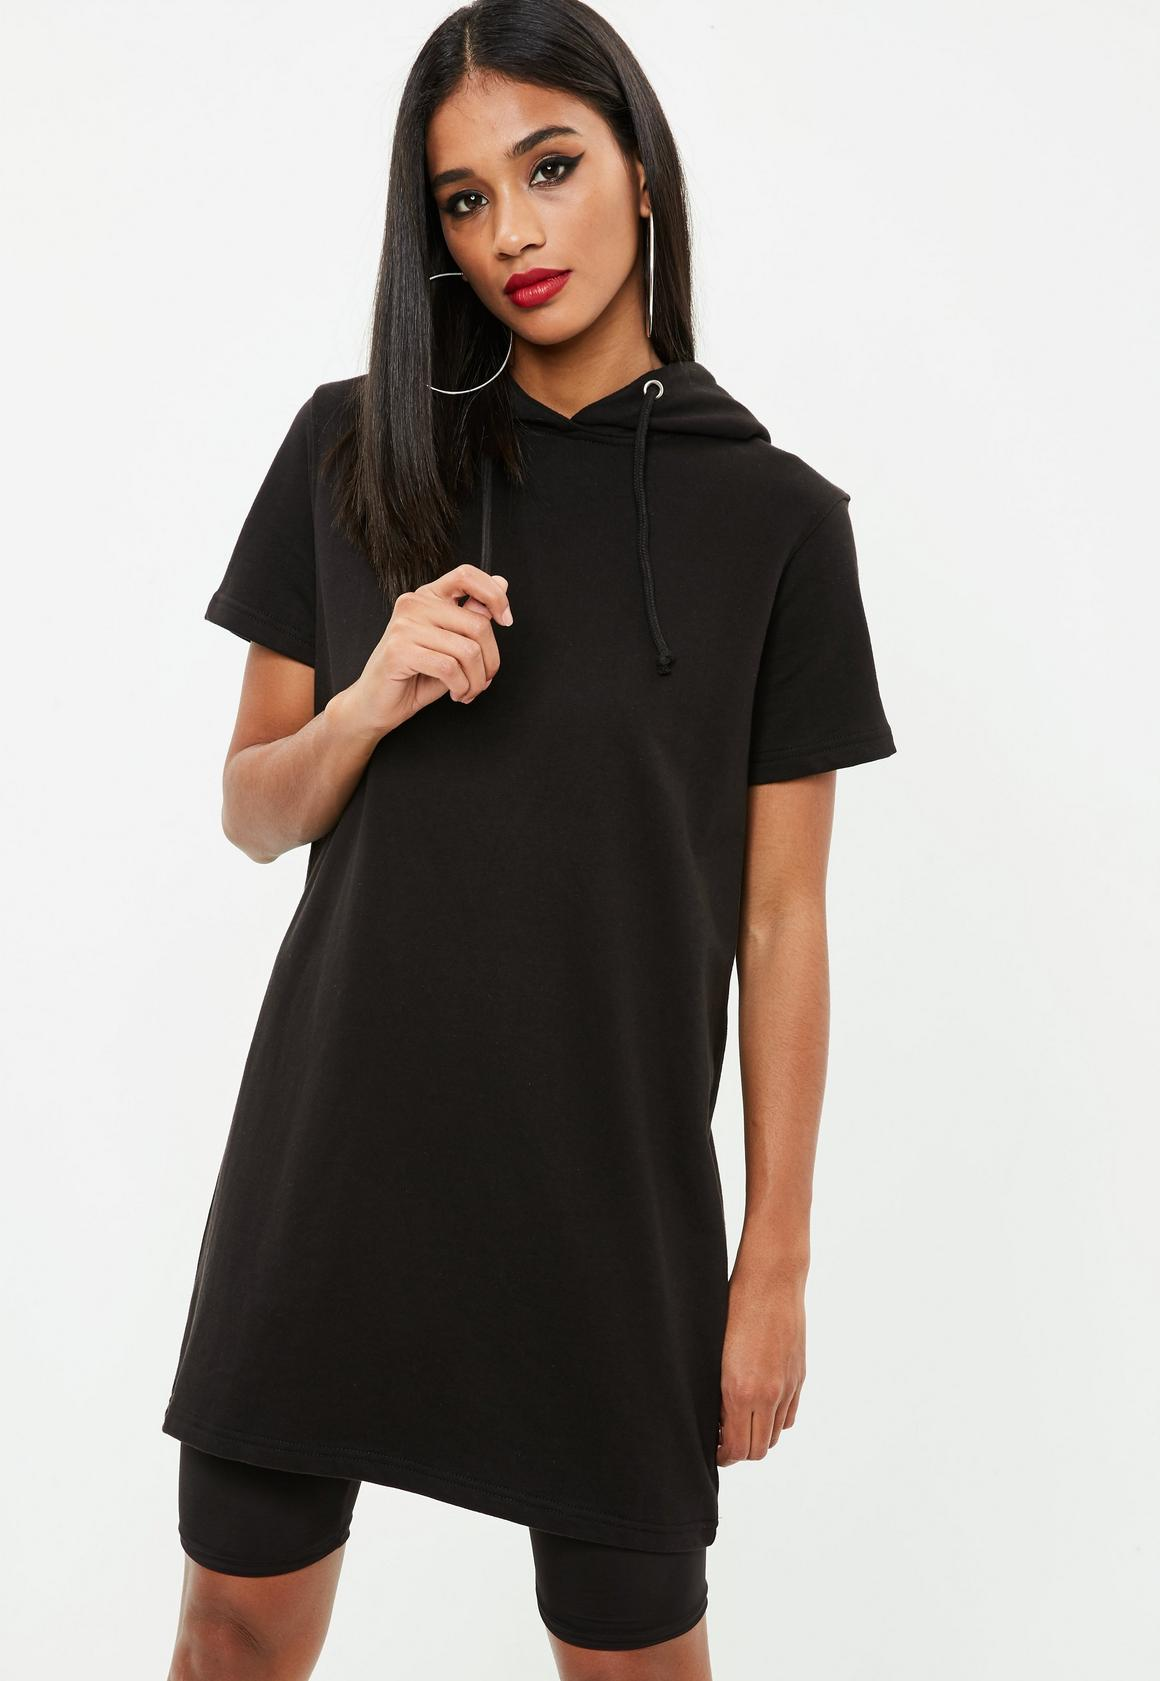 Black Short Sleeve Hooded Sweater Dress | Missguided